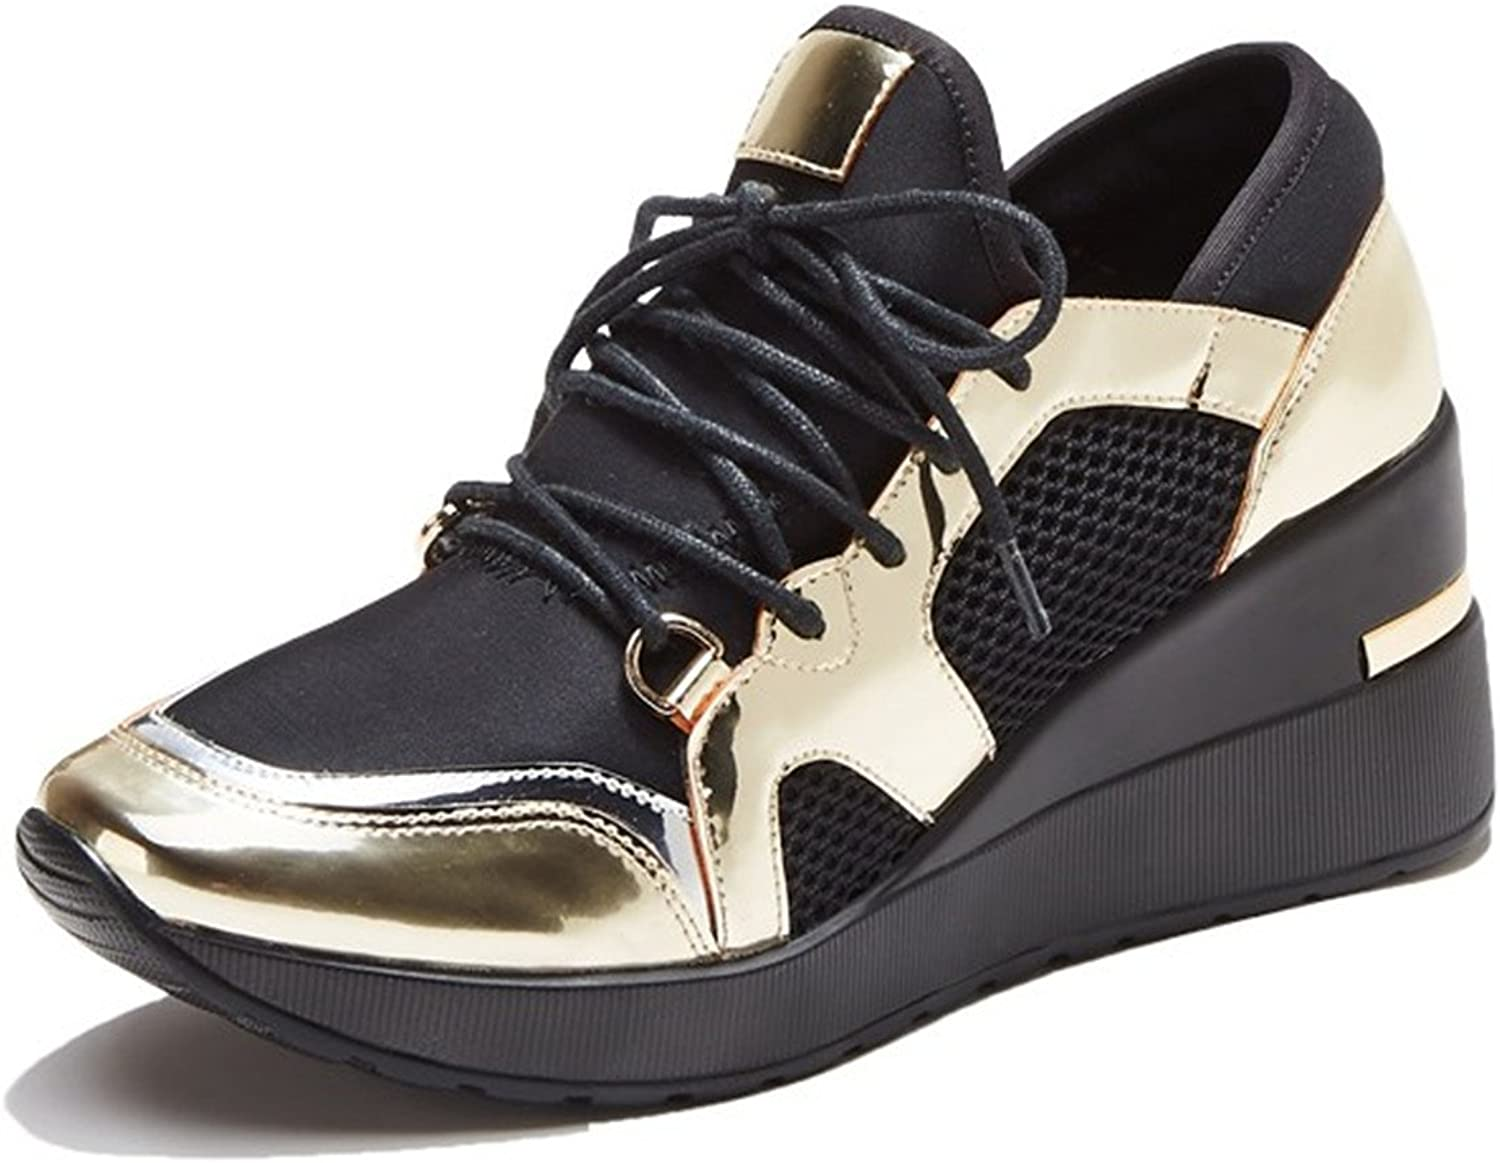 Nerefy 2018 Sneakers Women Fashion Lace-up Platform shoes for Women High Heels Casual shoes